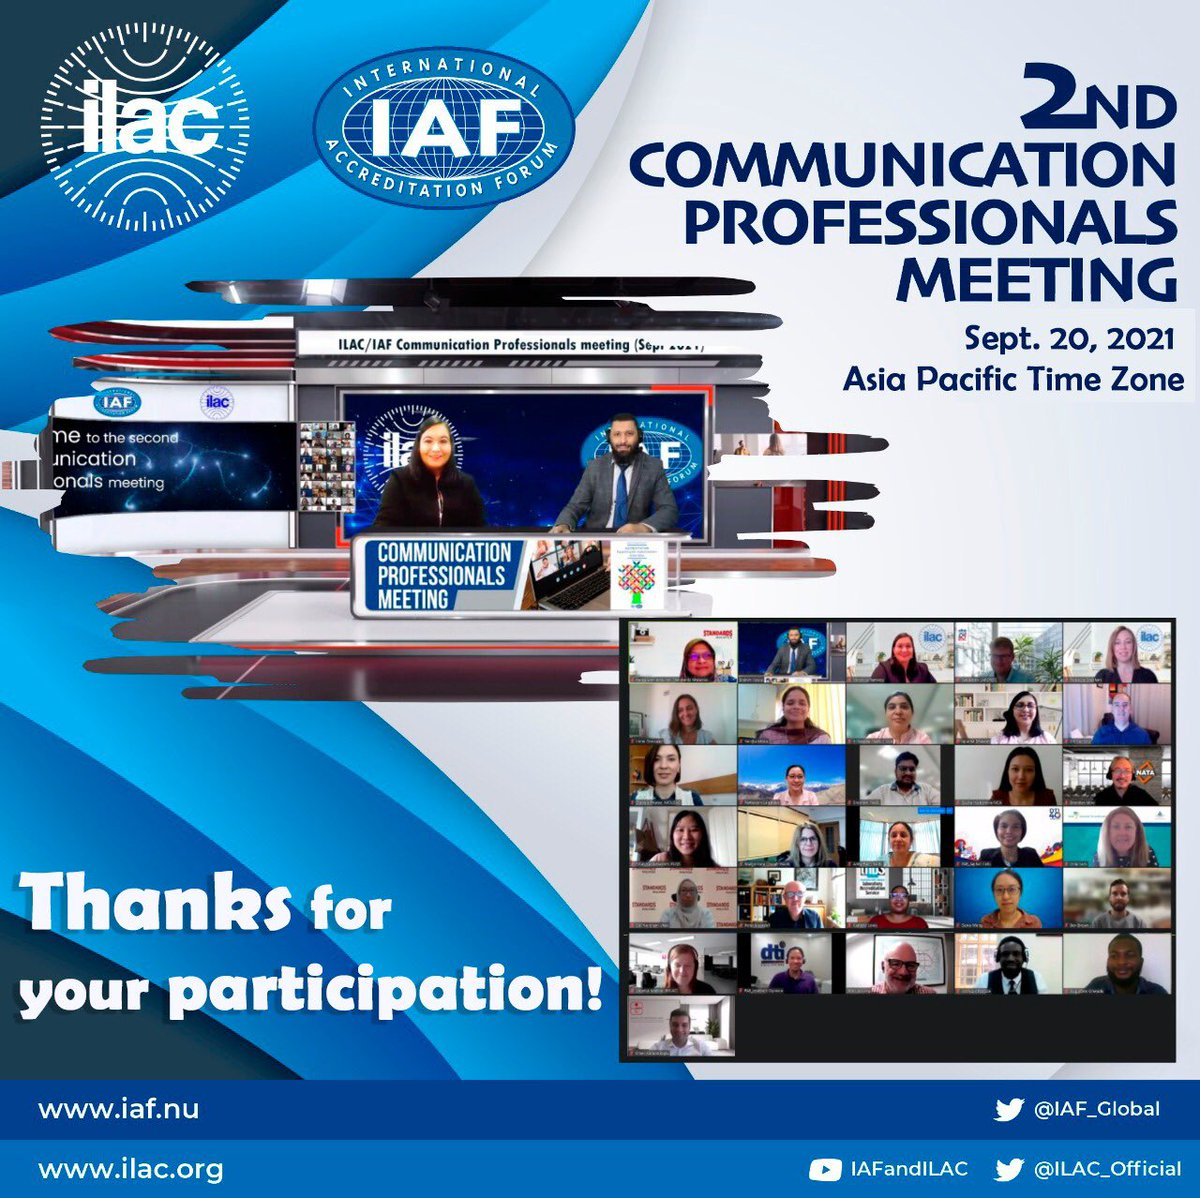 IAF and @ILAC_Official are holding several communications professionals meetings this week for two different time zones, discussing communication strategies and #WAD2022.